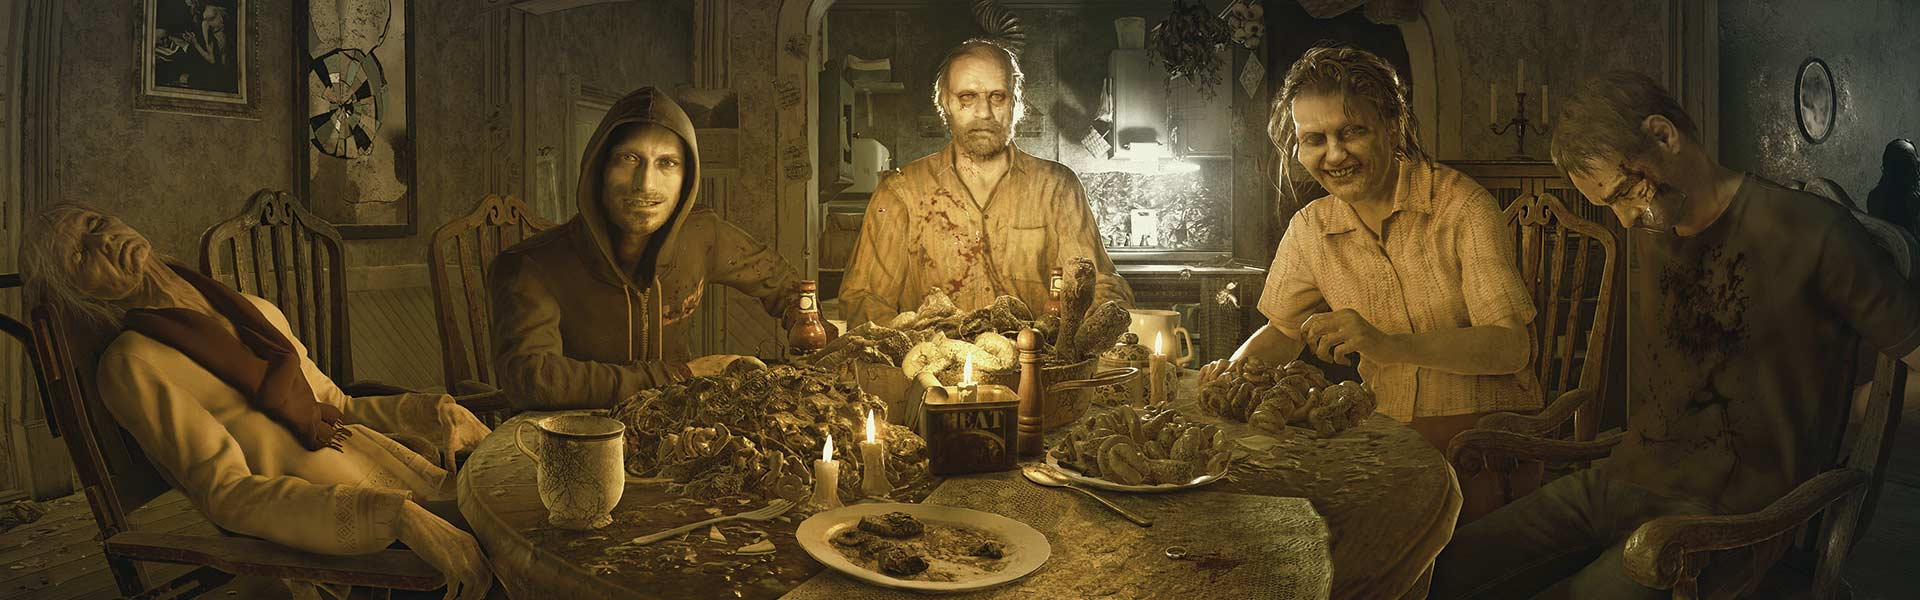 29679481445 a1652cafaf o Resident Evil 7 Gets Huge News And Creepy New Trailer